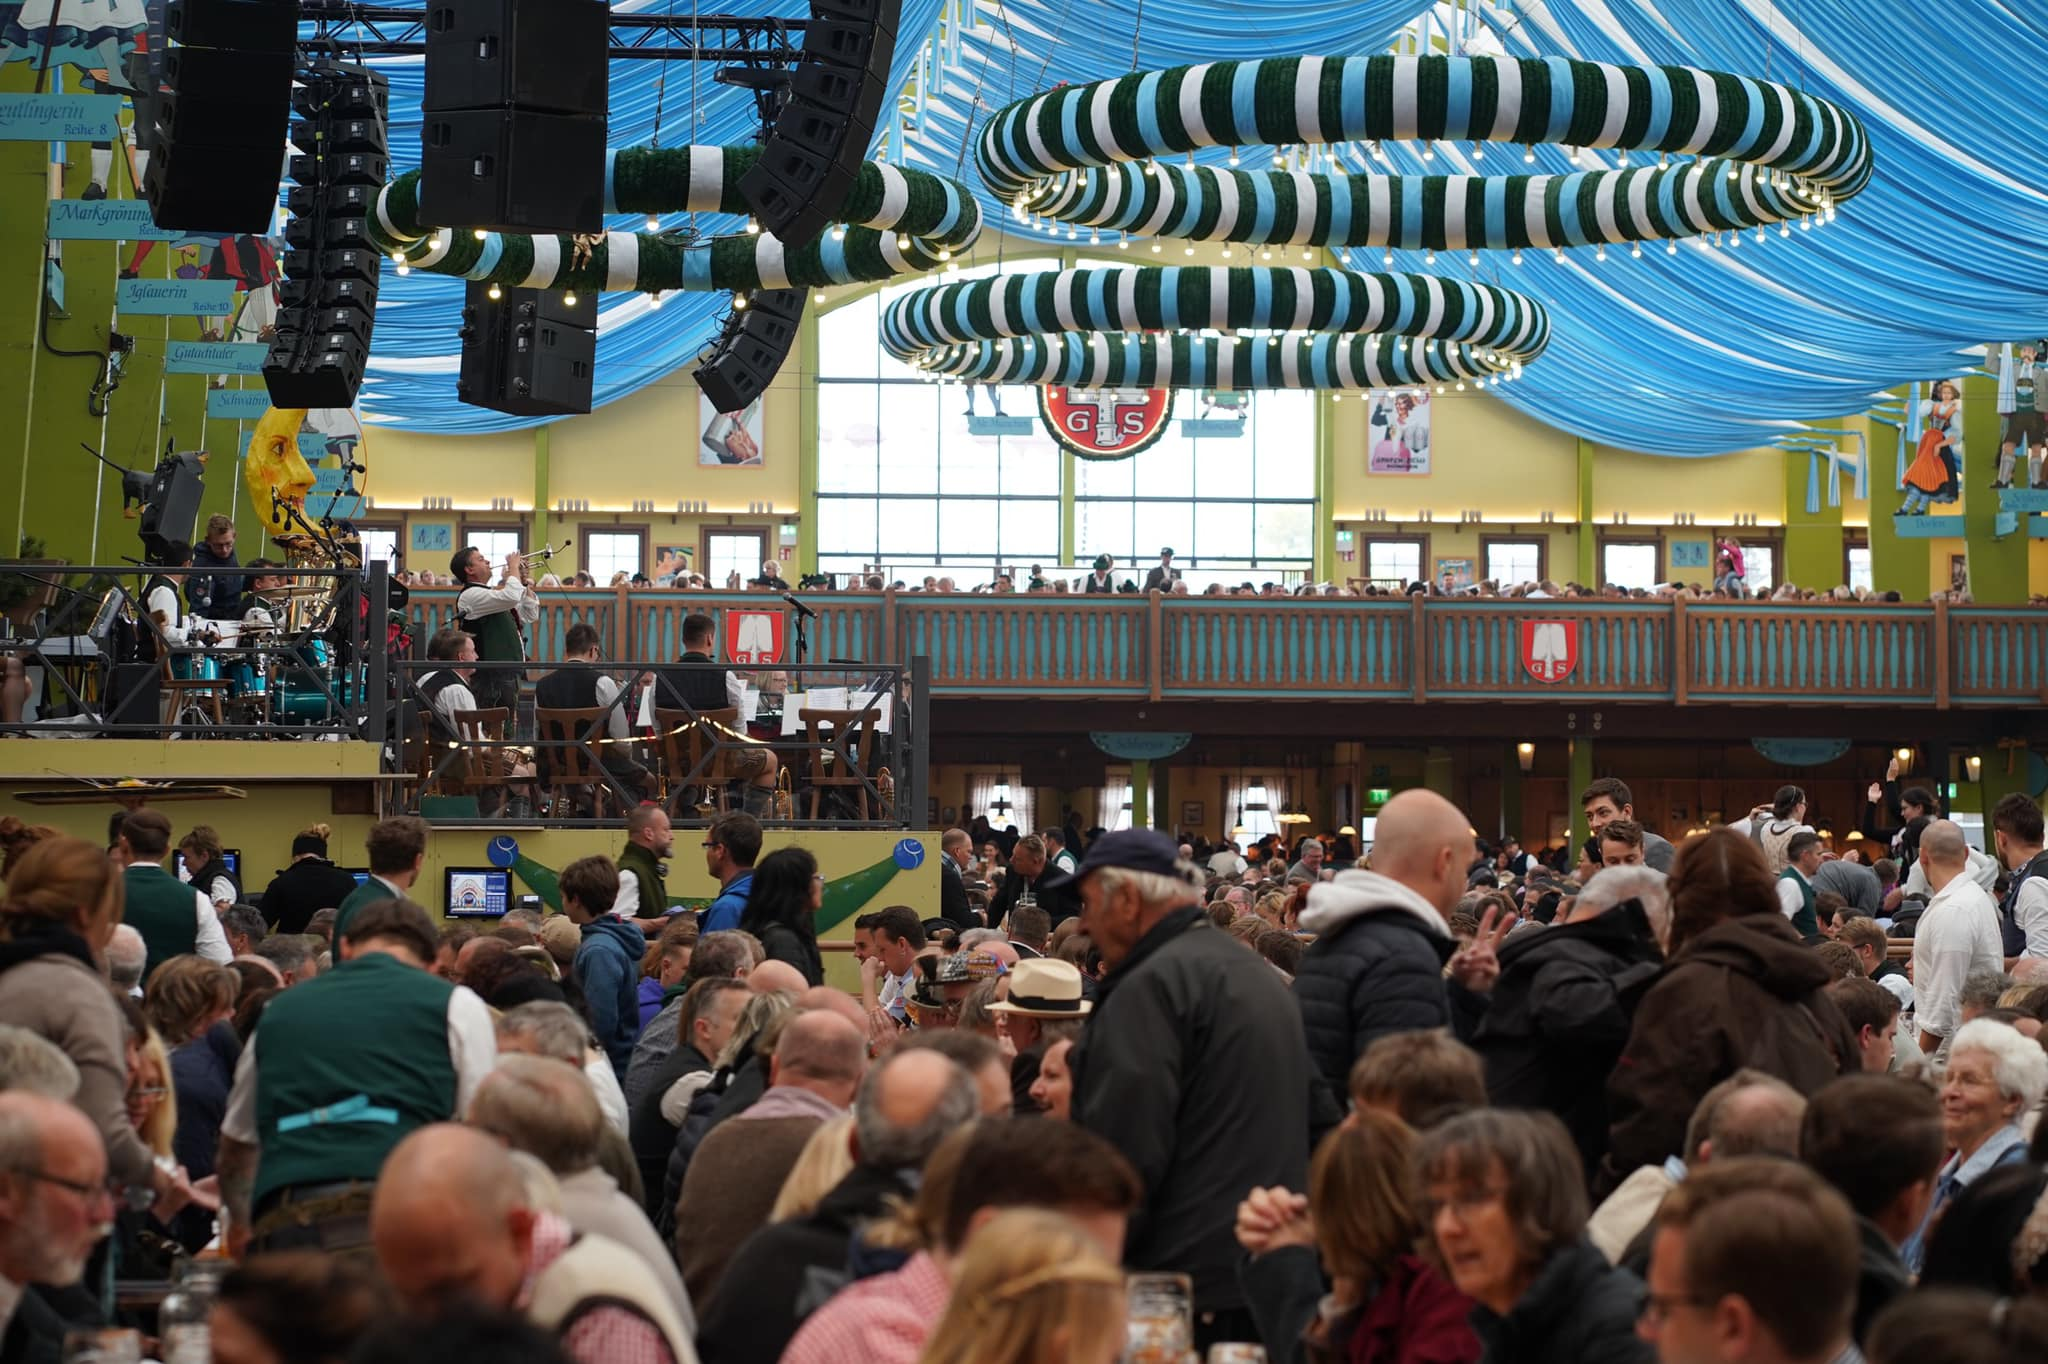 The first Oktoberfest in 1810 was, in fact, a universal national celebration on the occasion of the wedding of Prince Ludwig. Initially, Oktoberfest is mainly linked to horse racing and archery.